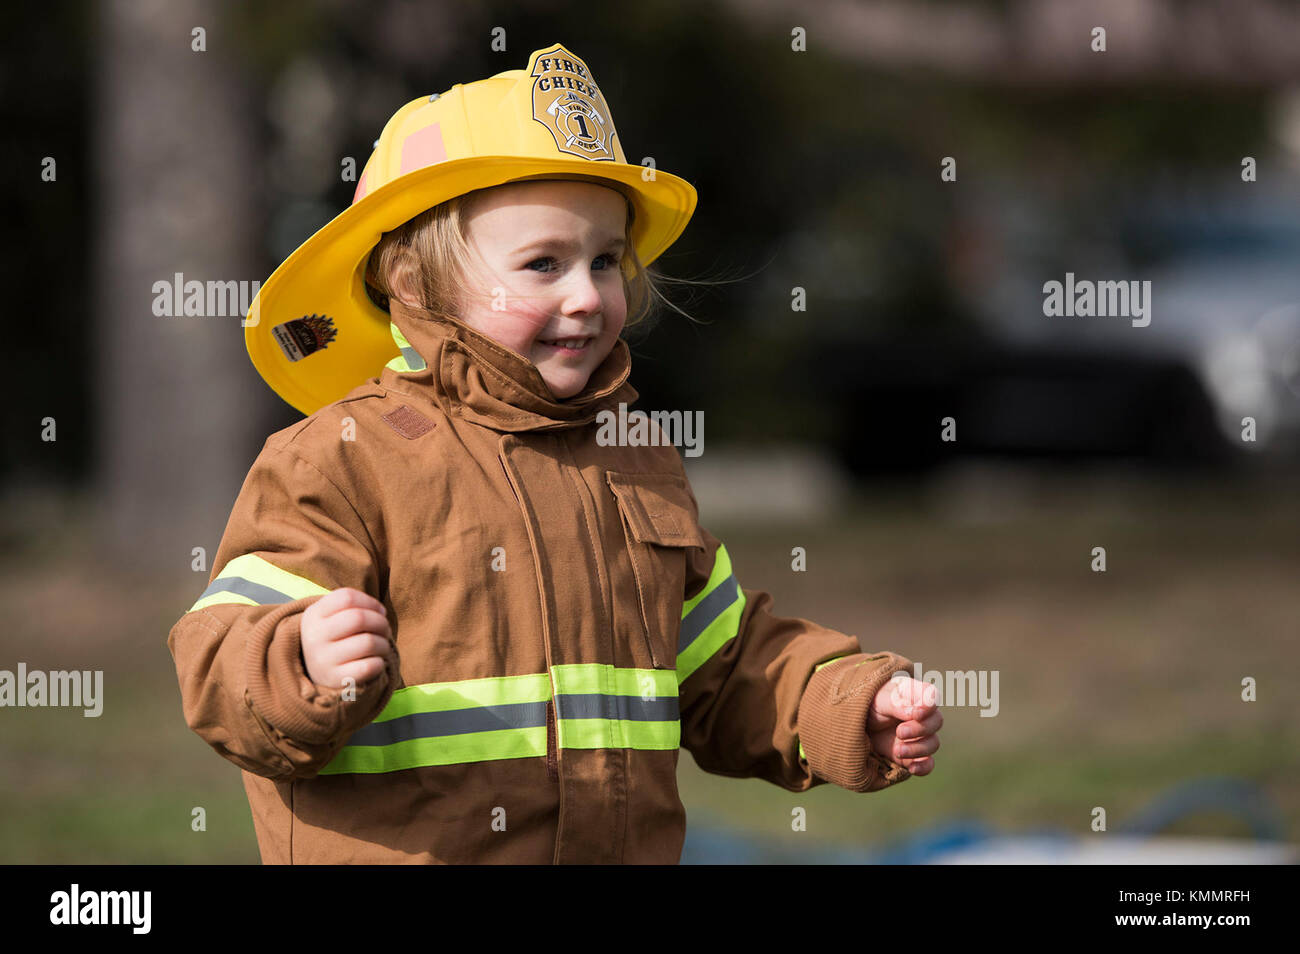 A child from the Kaiserslautern Military Community runs a child fireman's course during the Fire Prevention Week - Stock Image